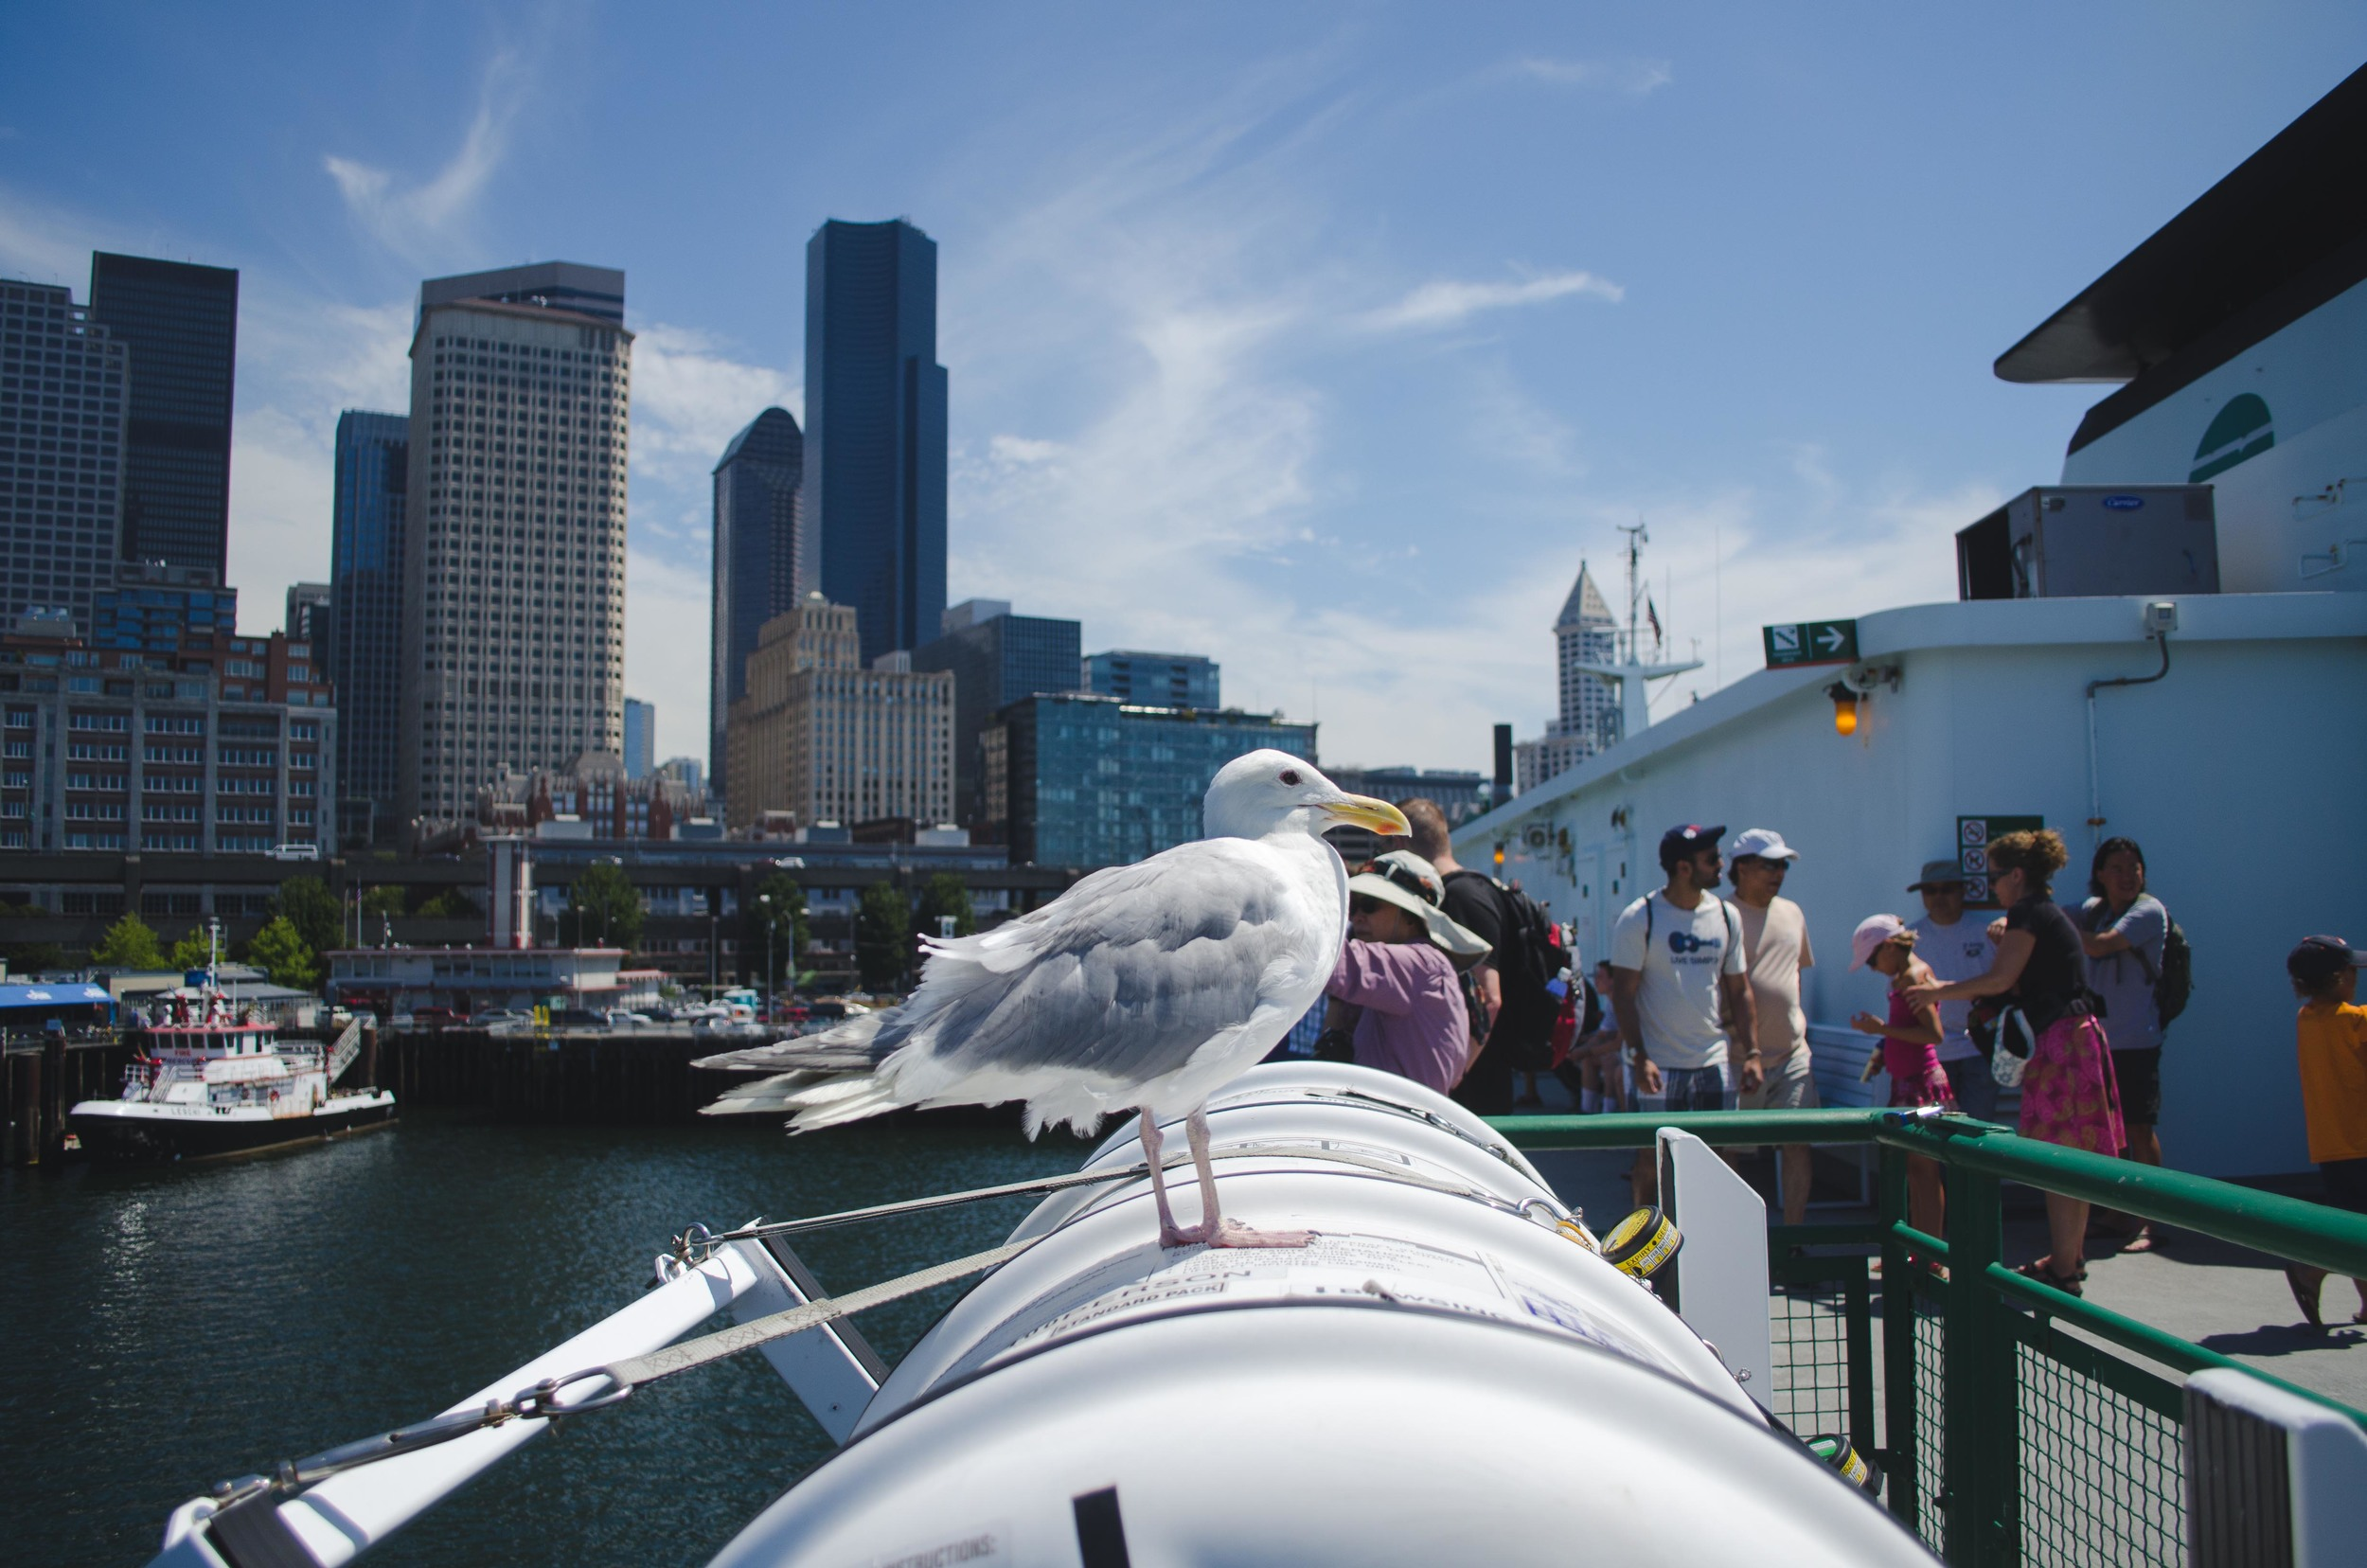 Ferry to Bainbridge!  This seagull guarded the life raft capsule en route.  The mark on the underside of its beak clearly marks its induction into the secret society of Avian Water Guards